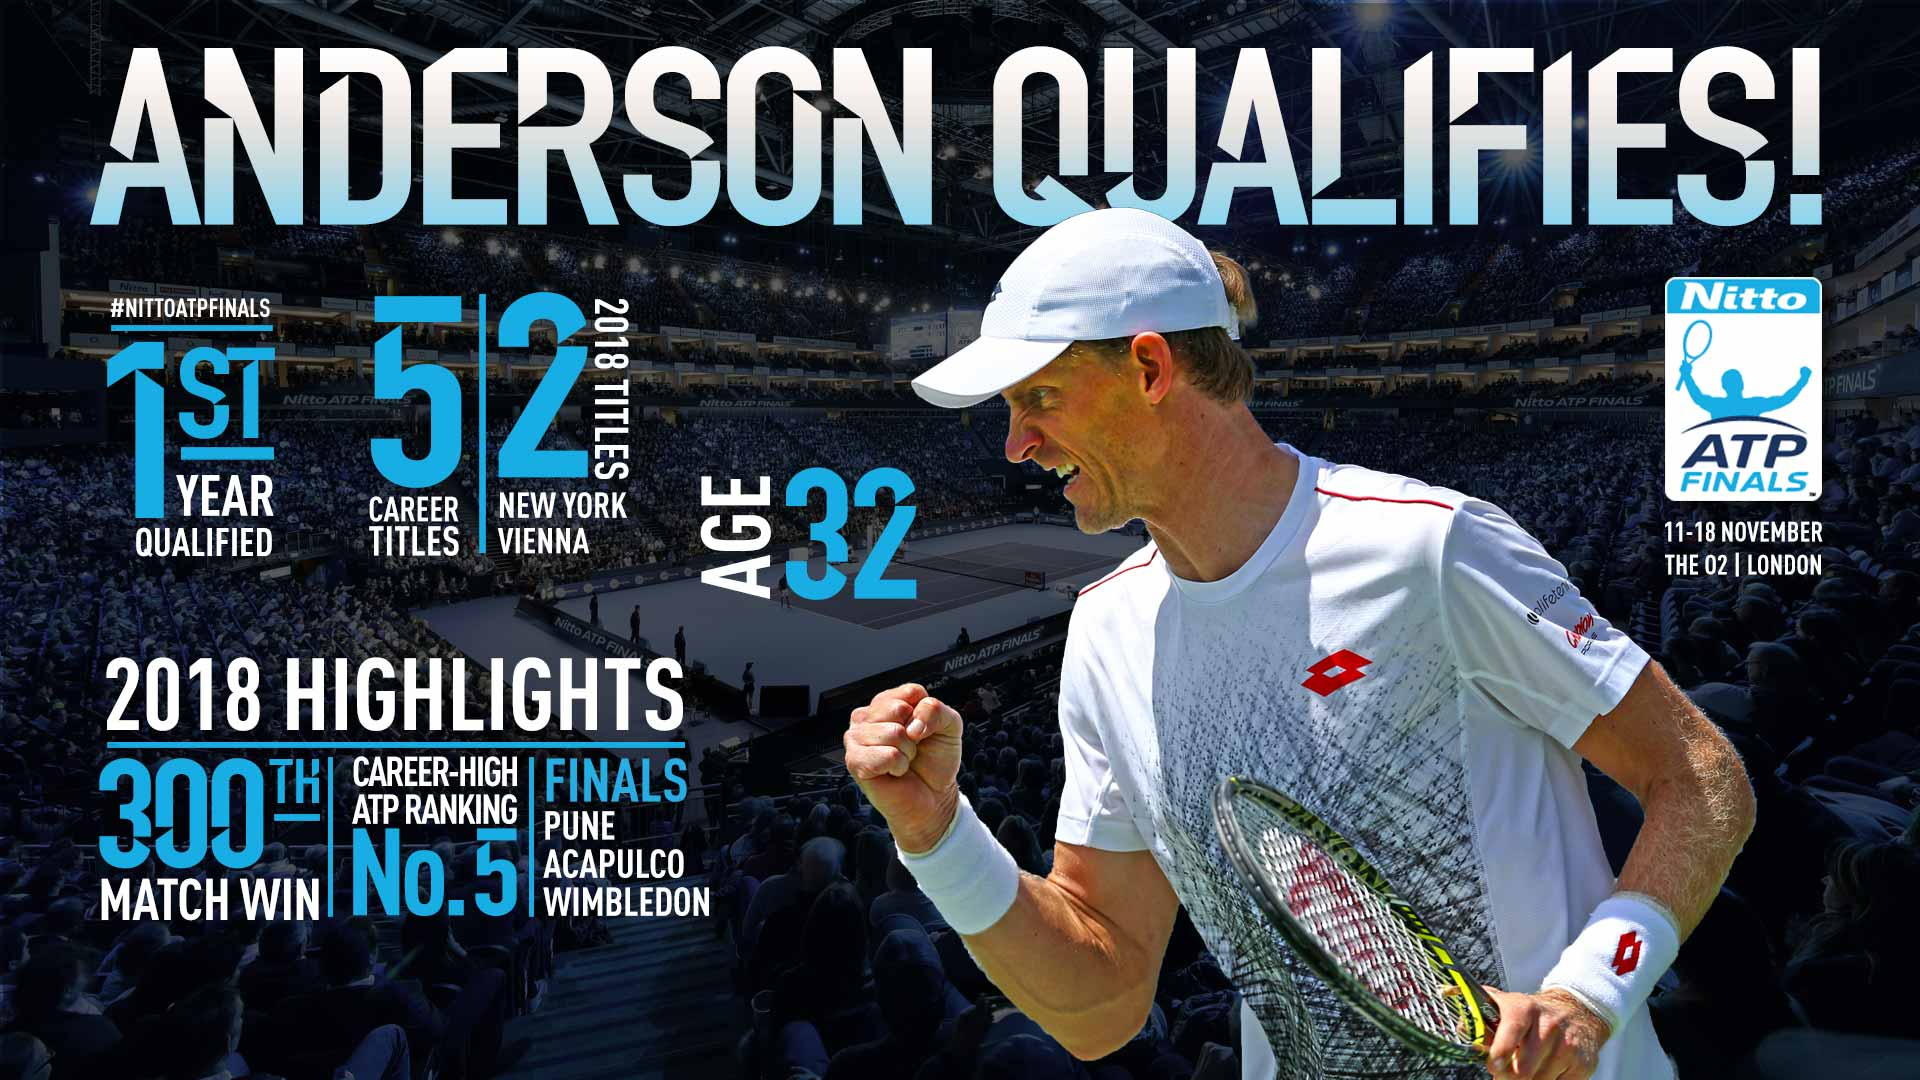 Anderson Creates History With First-Time Nitto ATP Finals Qualification | Nitto ATP Finals